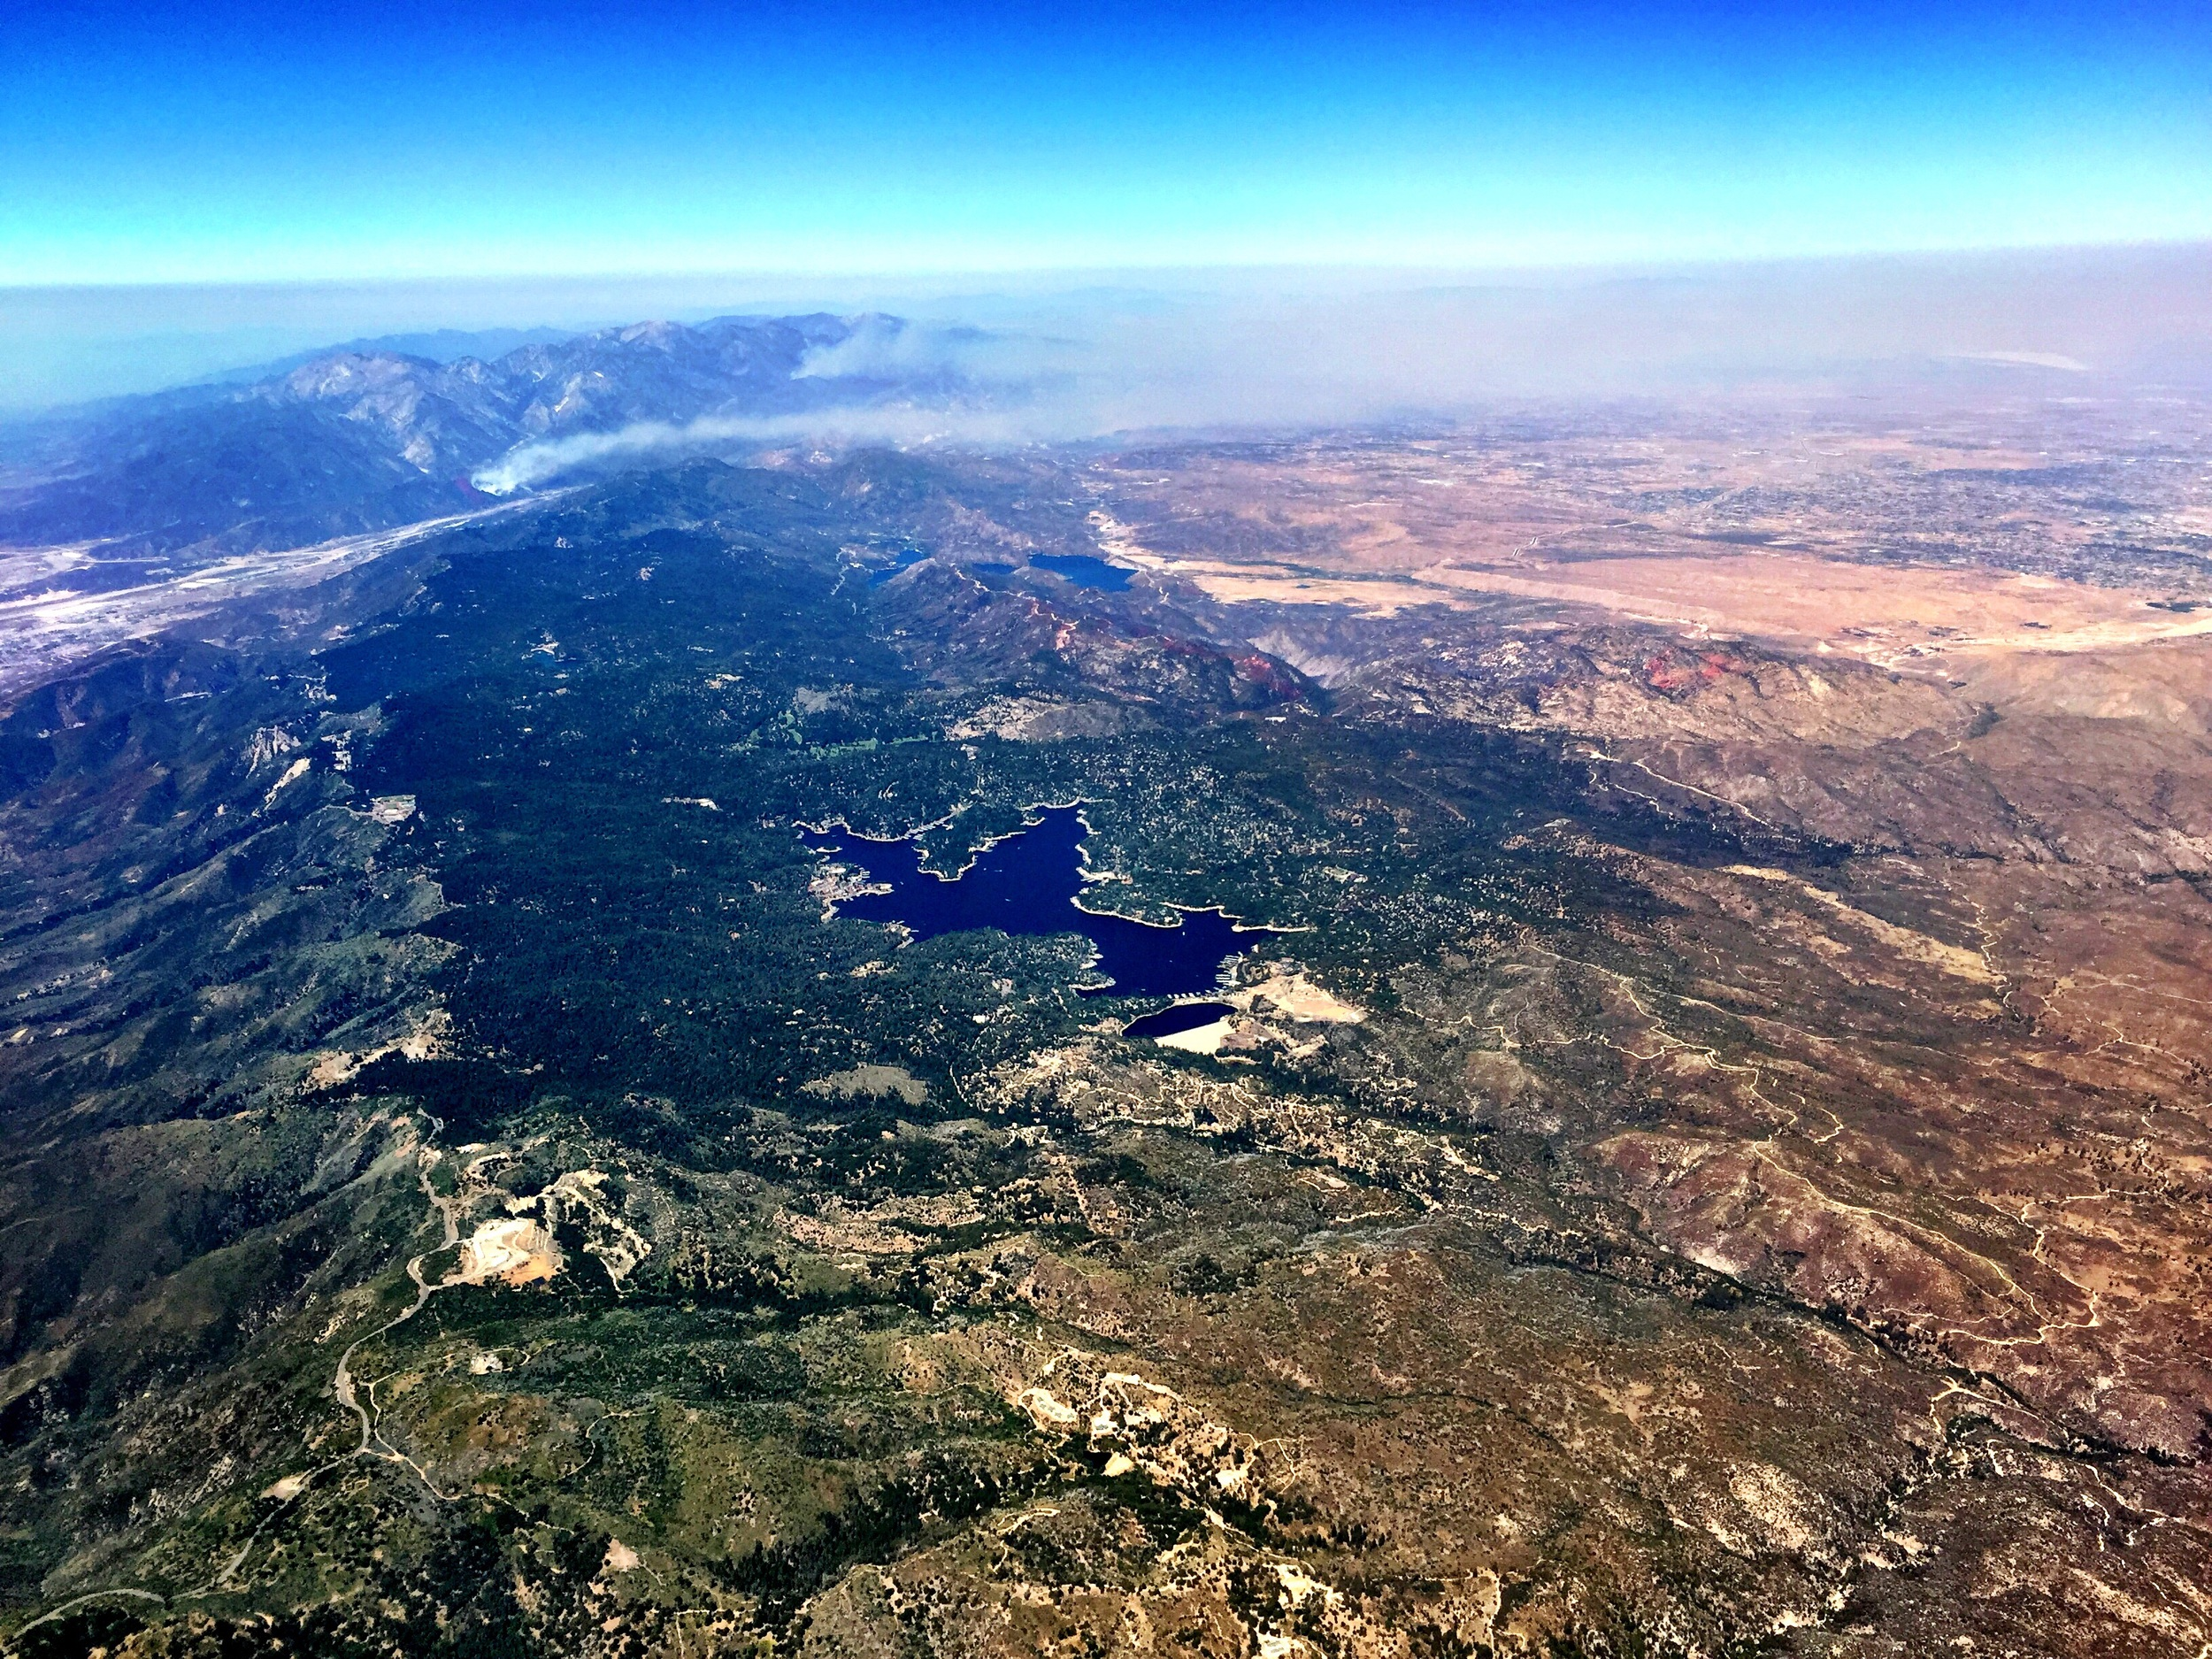 Over Running Springs, California, with a view of wildfires on the mountain, at 1:52 PM.